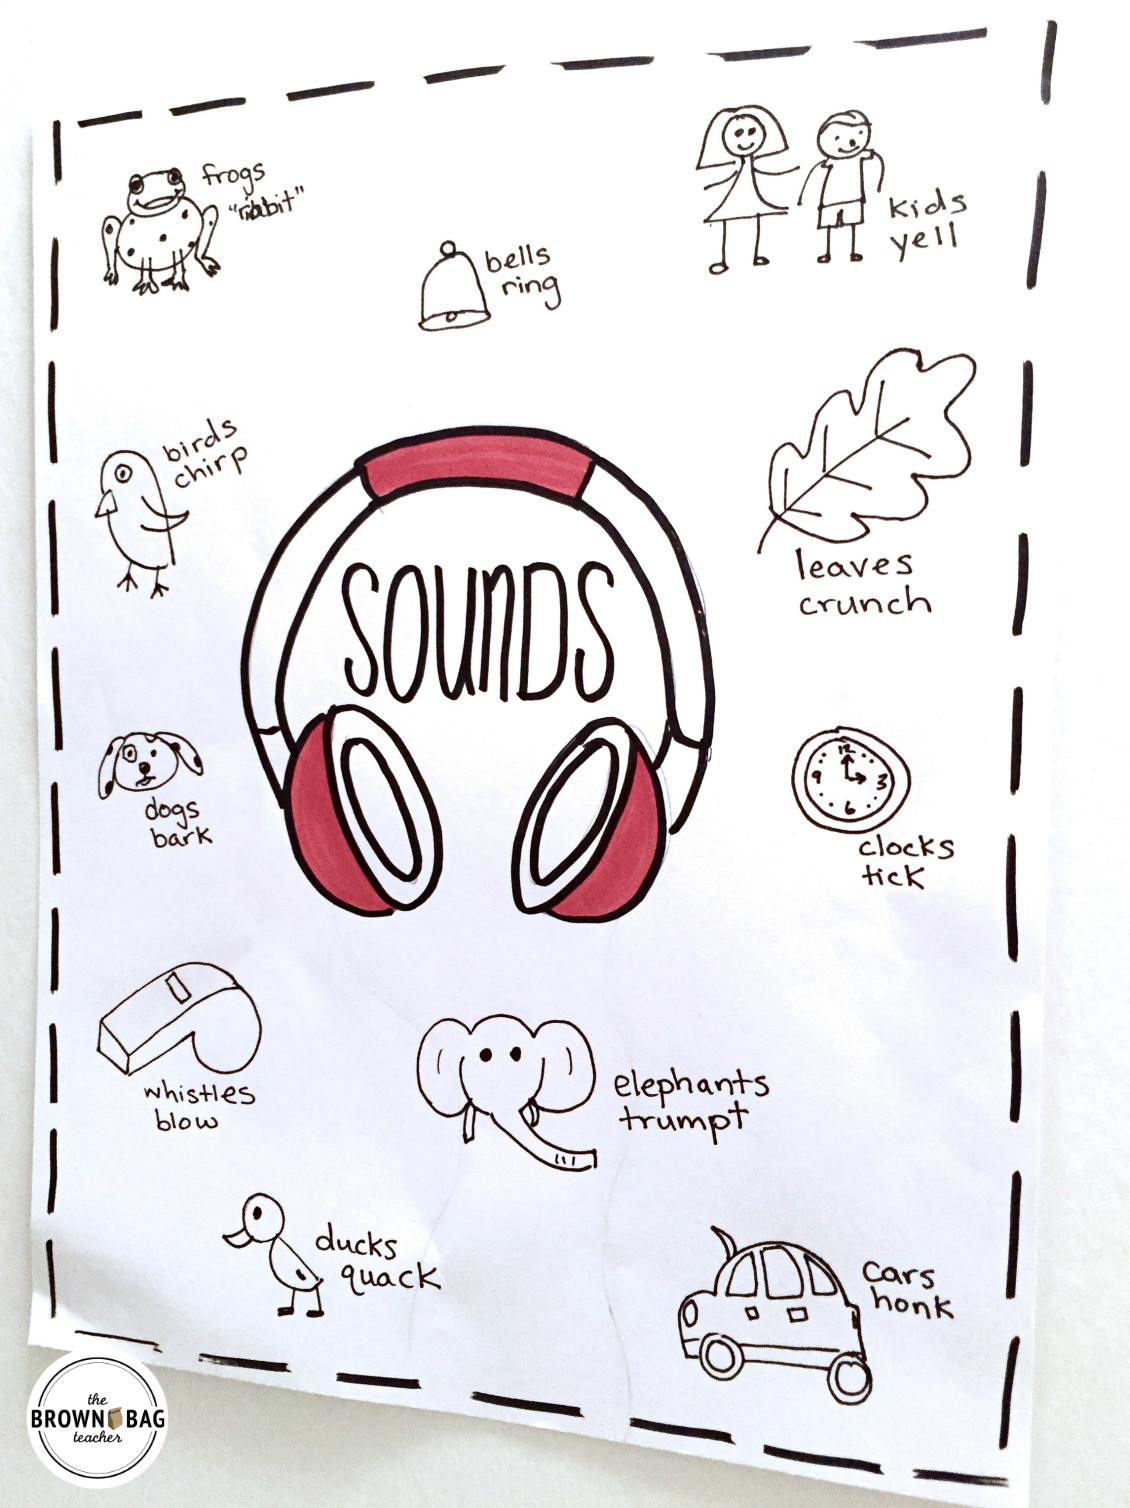 Sound: 1st Grade Science - The Brown Bag Teacher